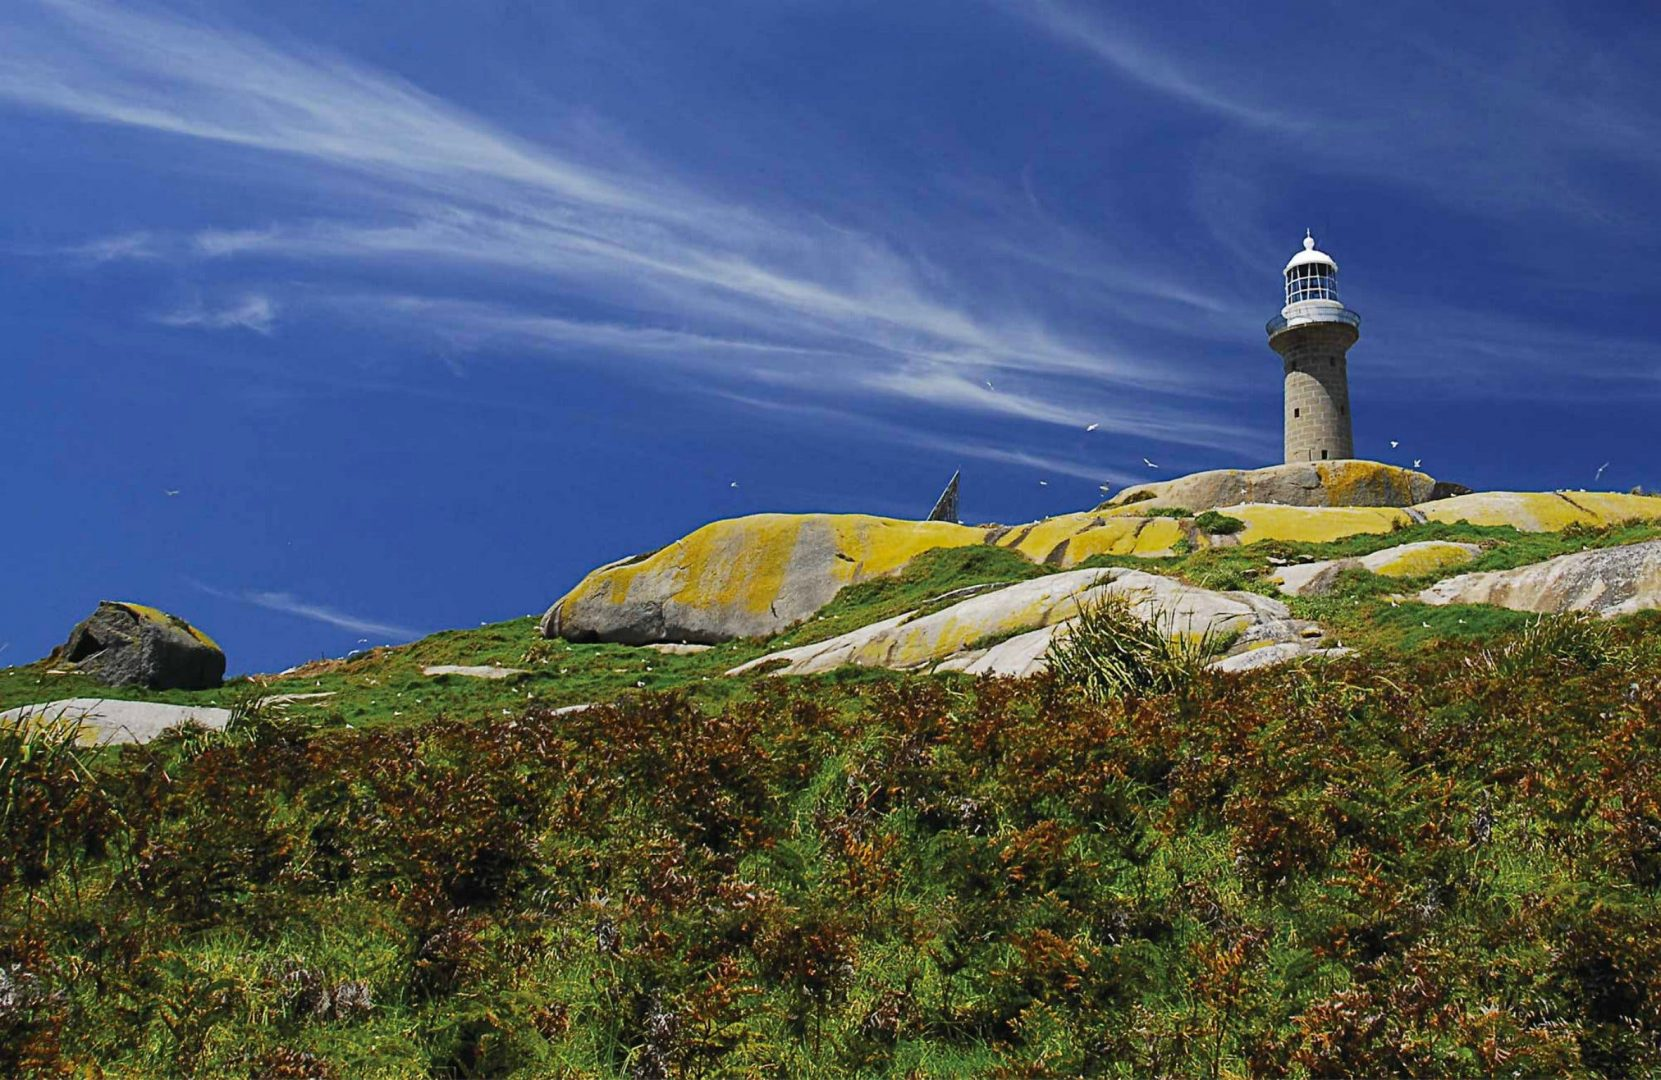 Montague Island Lighthouse, Narooma, Australia